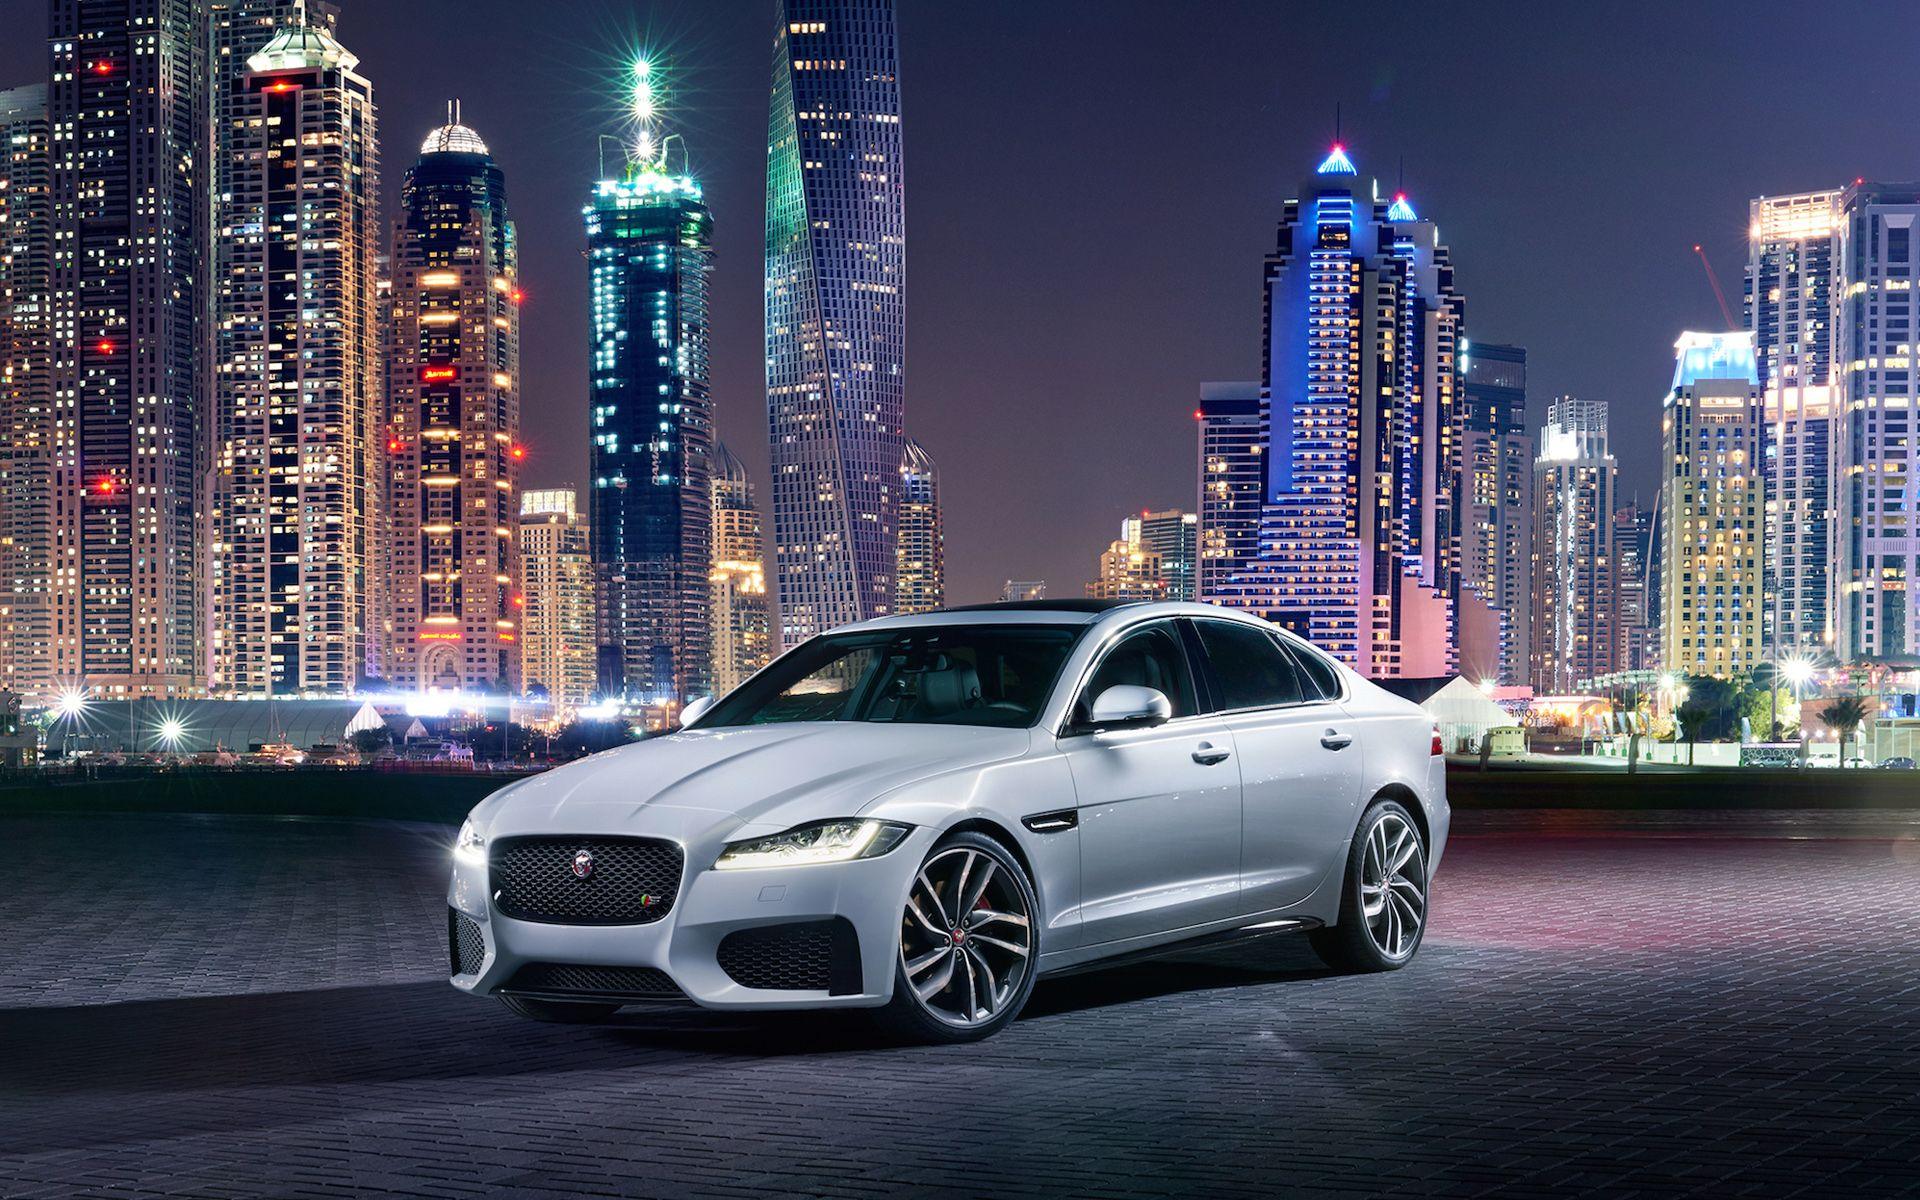 Free HD Jaguar Wallpaper